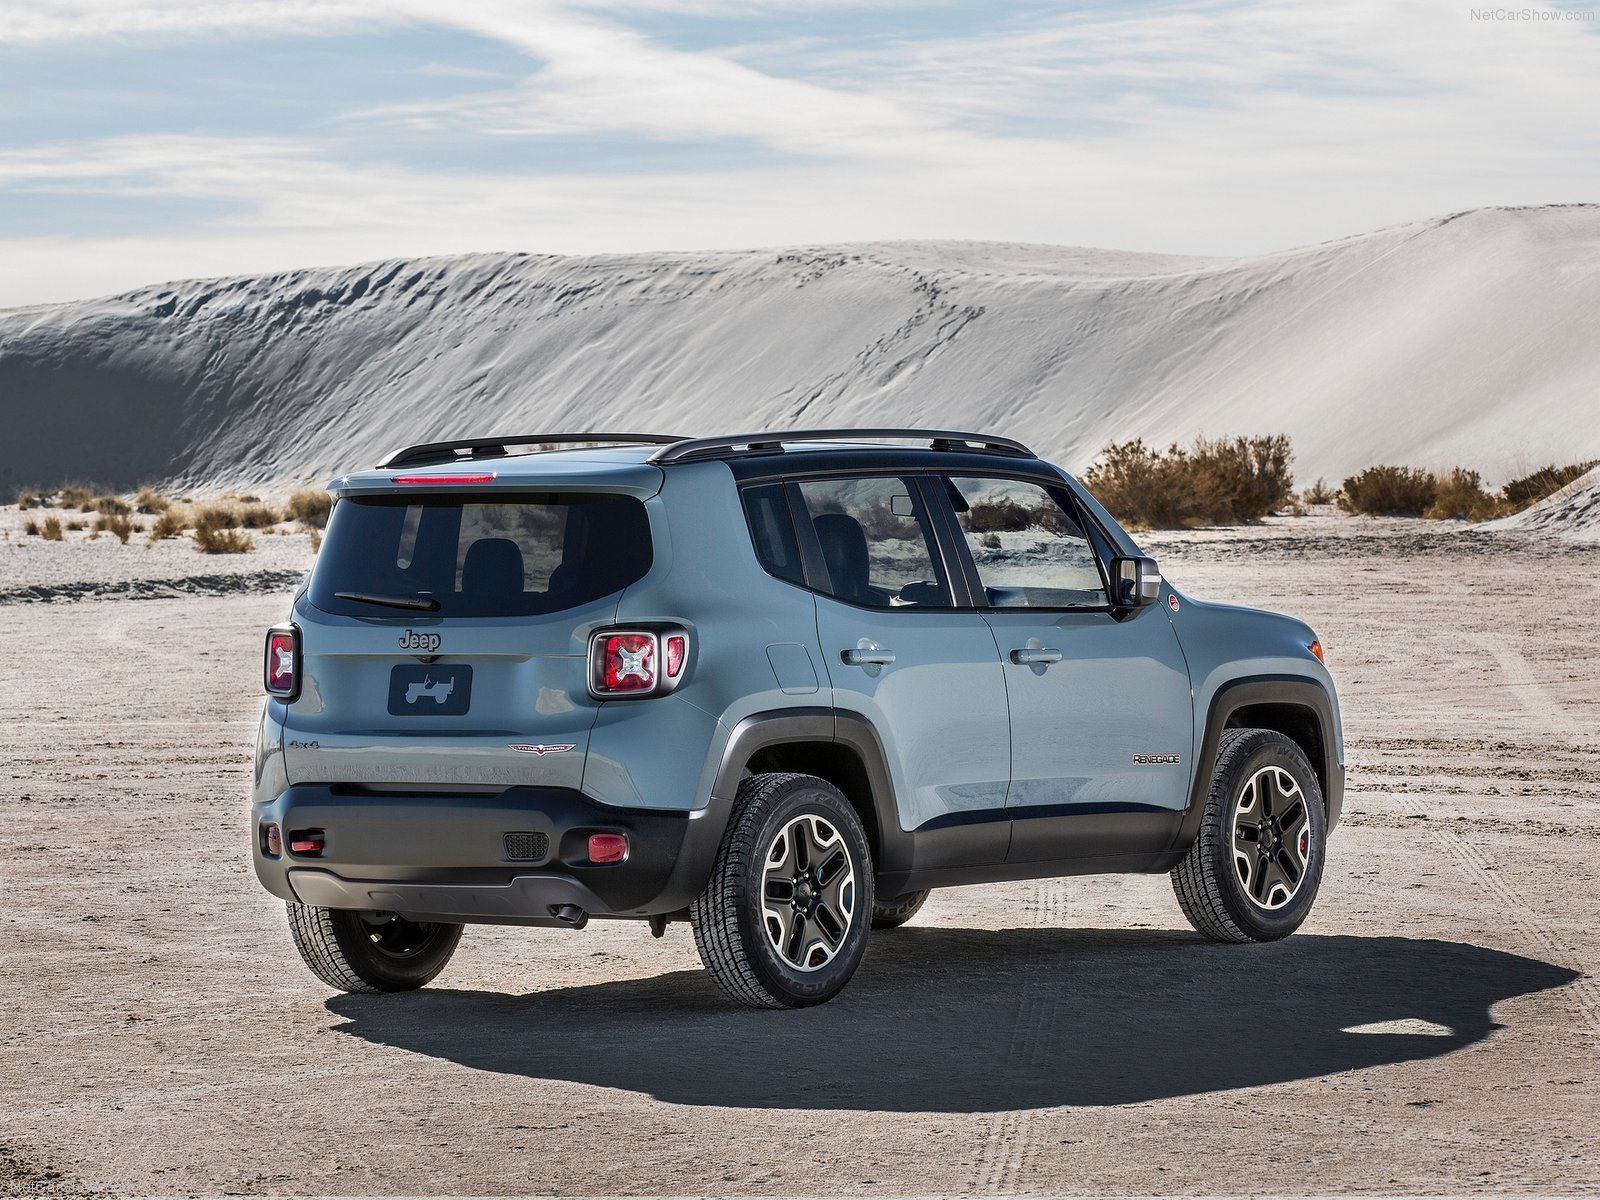 3dtuning of jeep renegade suv 2015 unique on line car configurator for more than. Black Bedroom Furniture Sets. Home Design Ideas